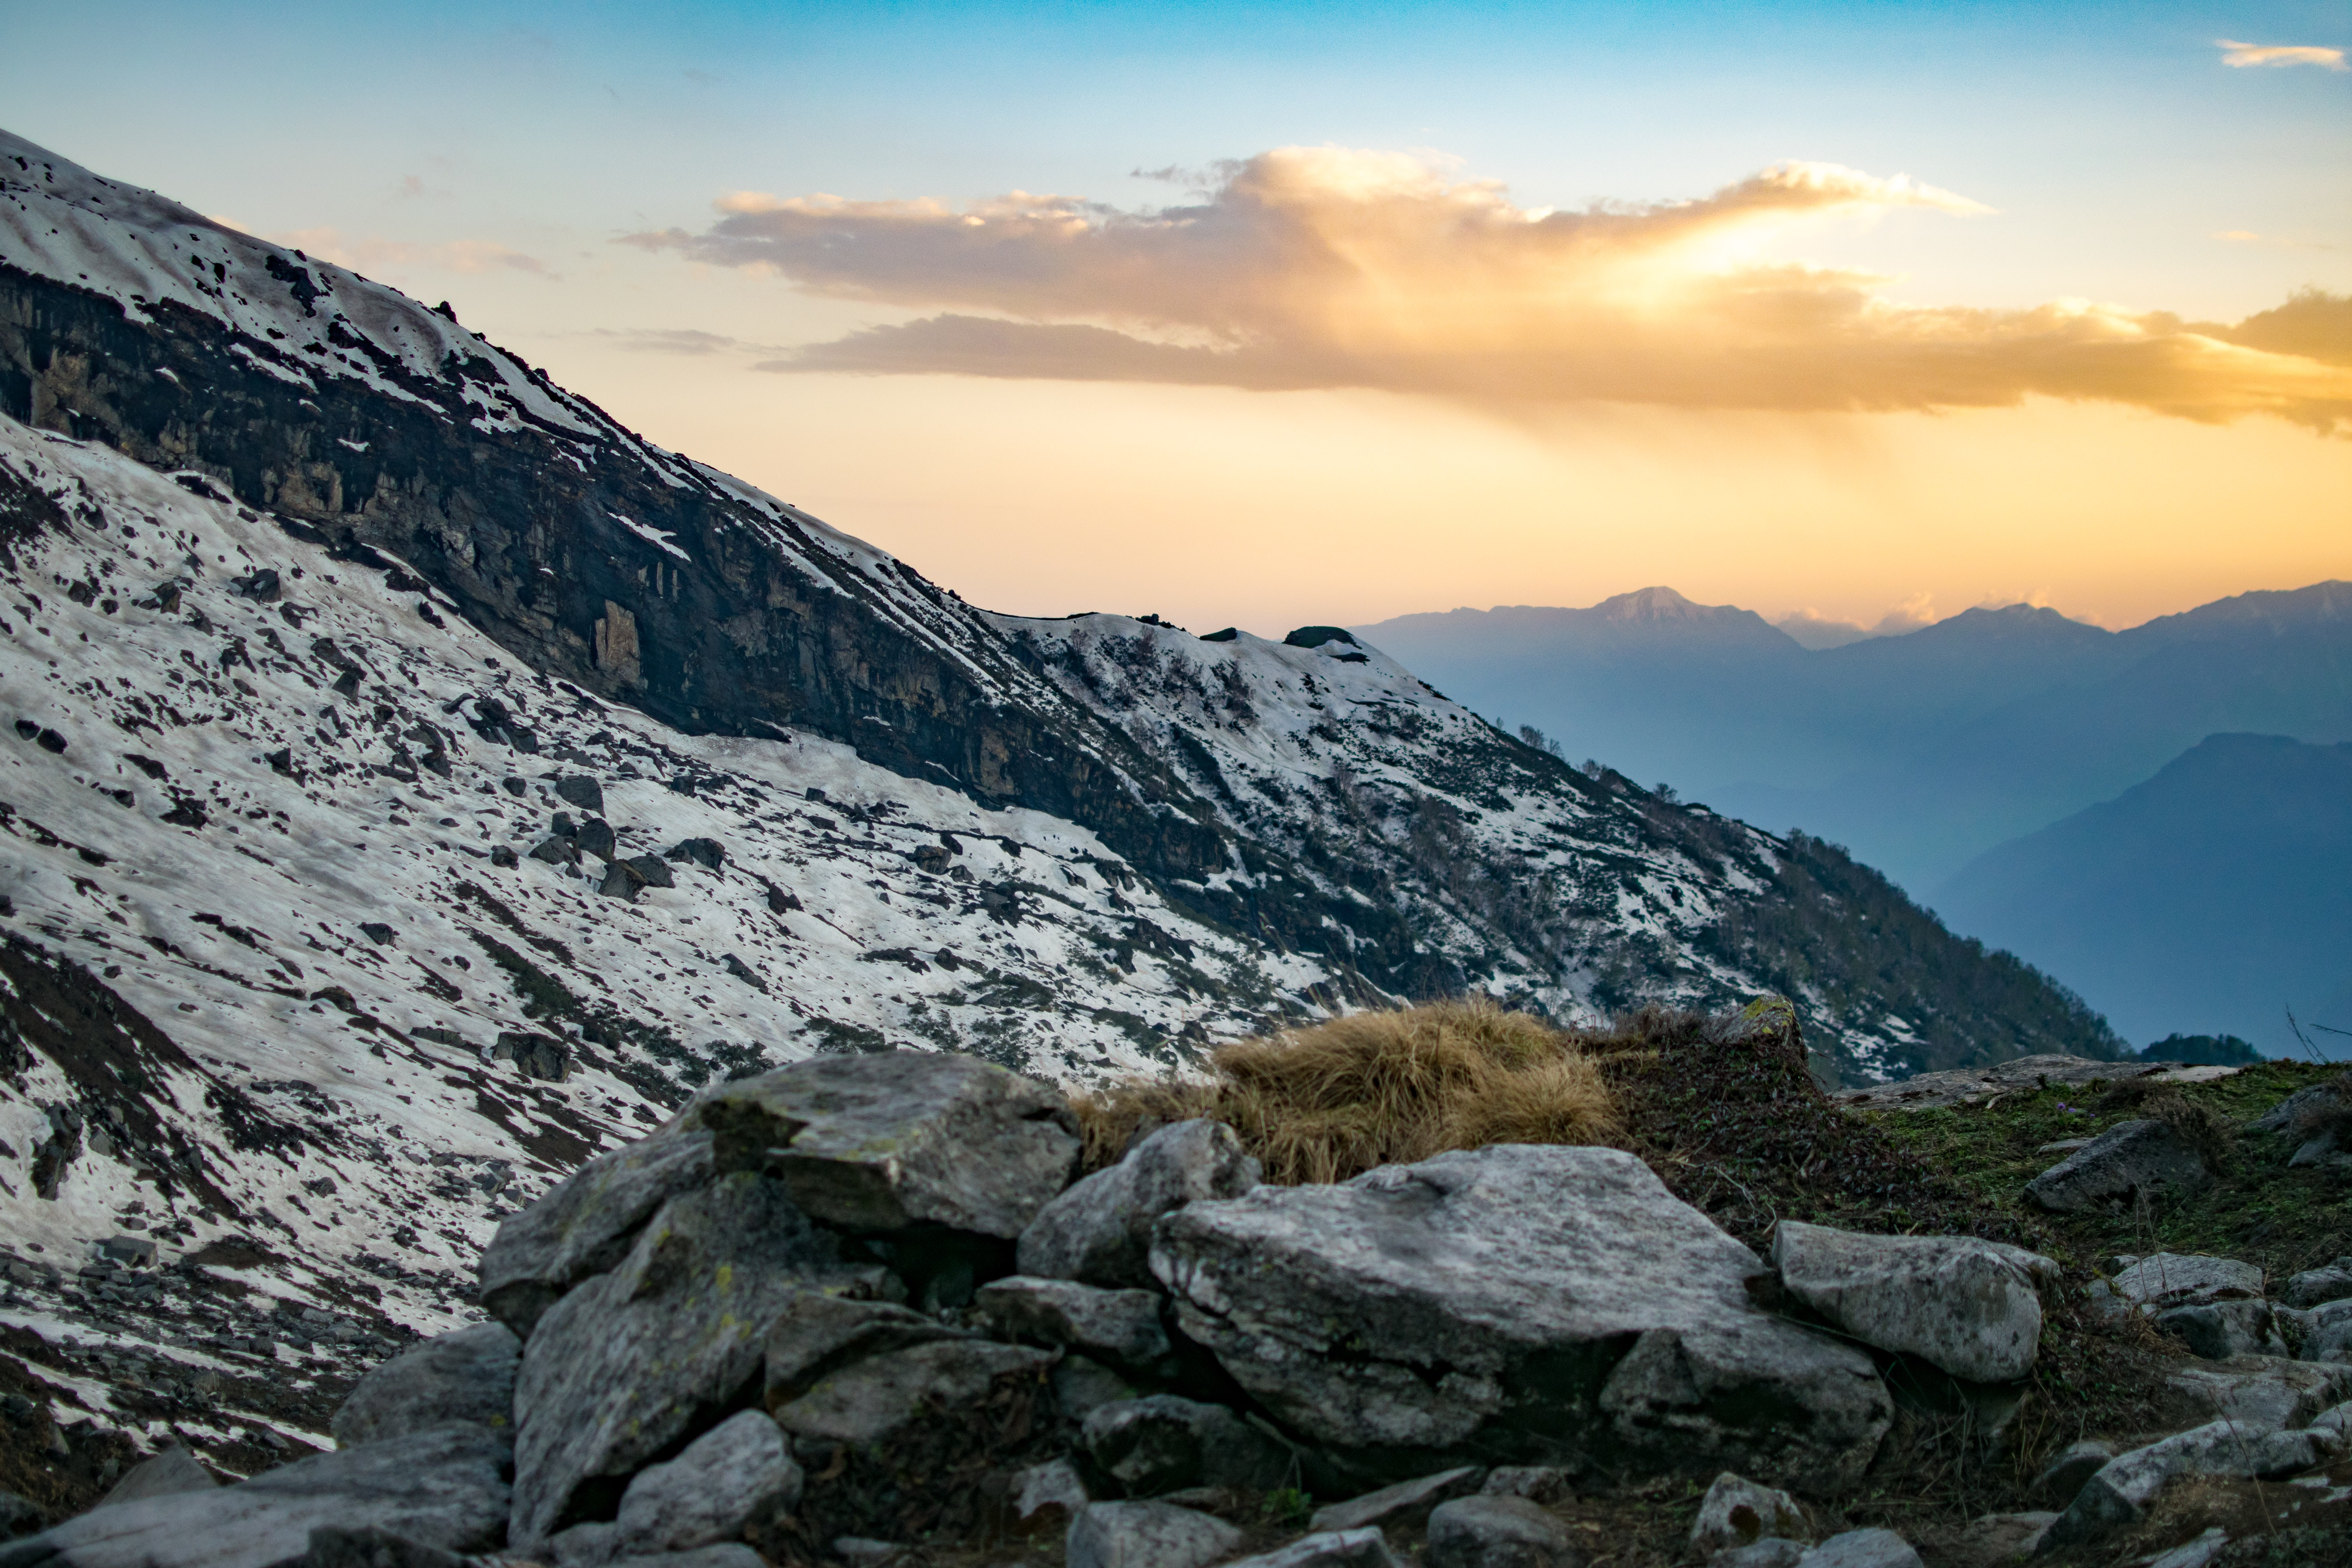 White and Gray Mountains, Nature, Winter, Wide angle photography, Sunset, HQ Photo